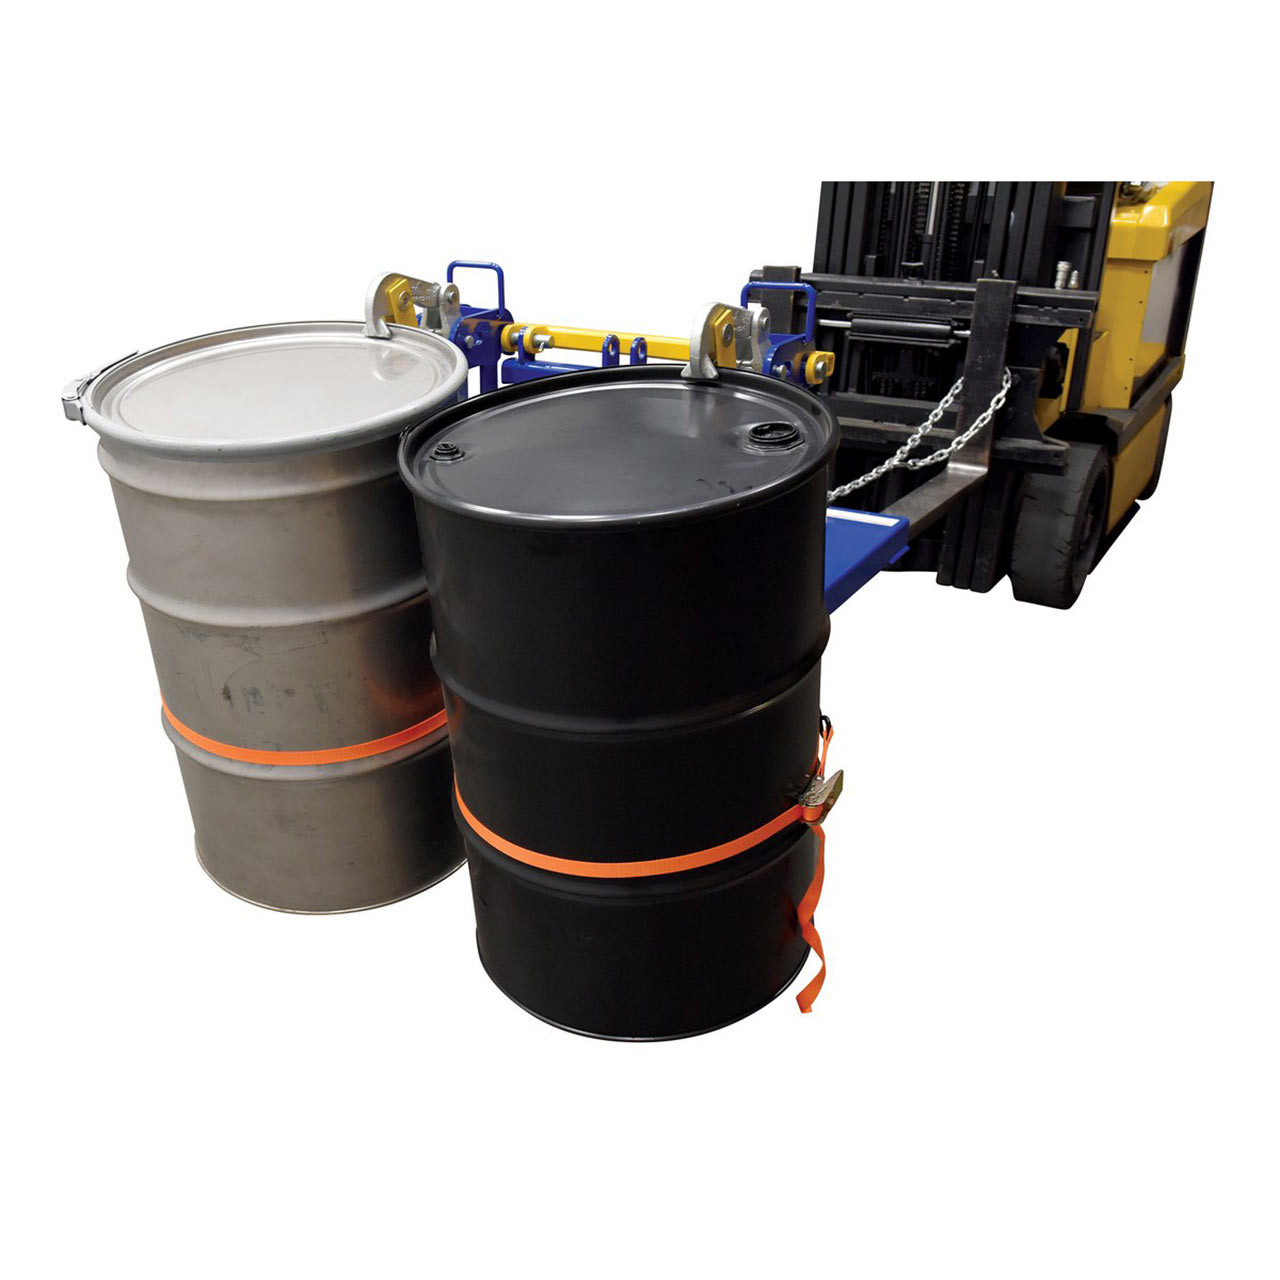 Automatic Drum Lifter With Drums